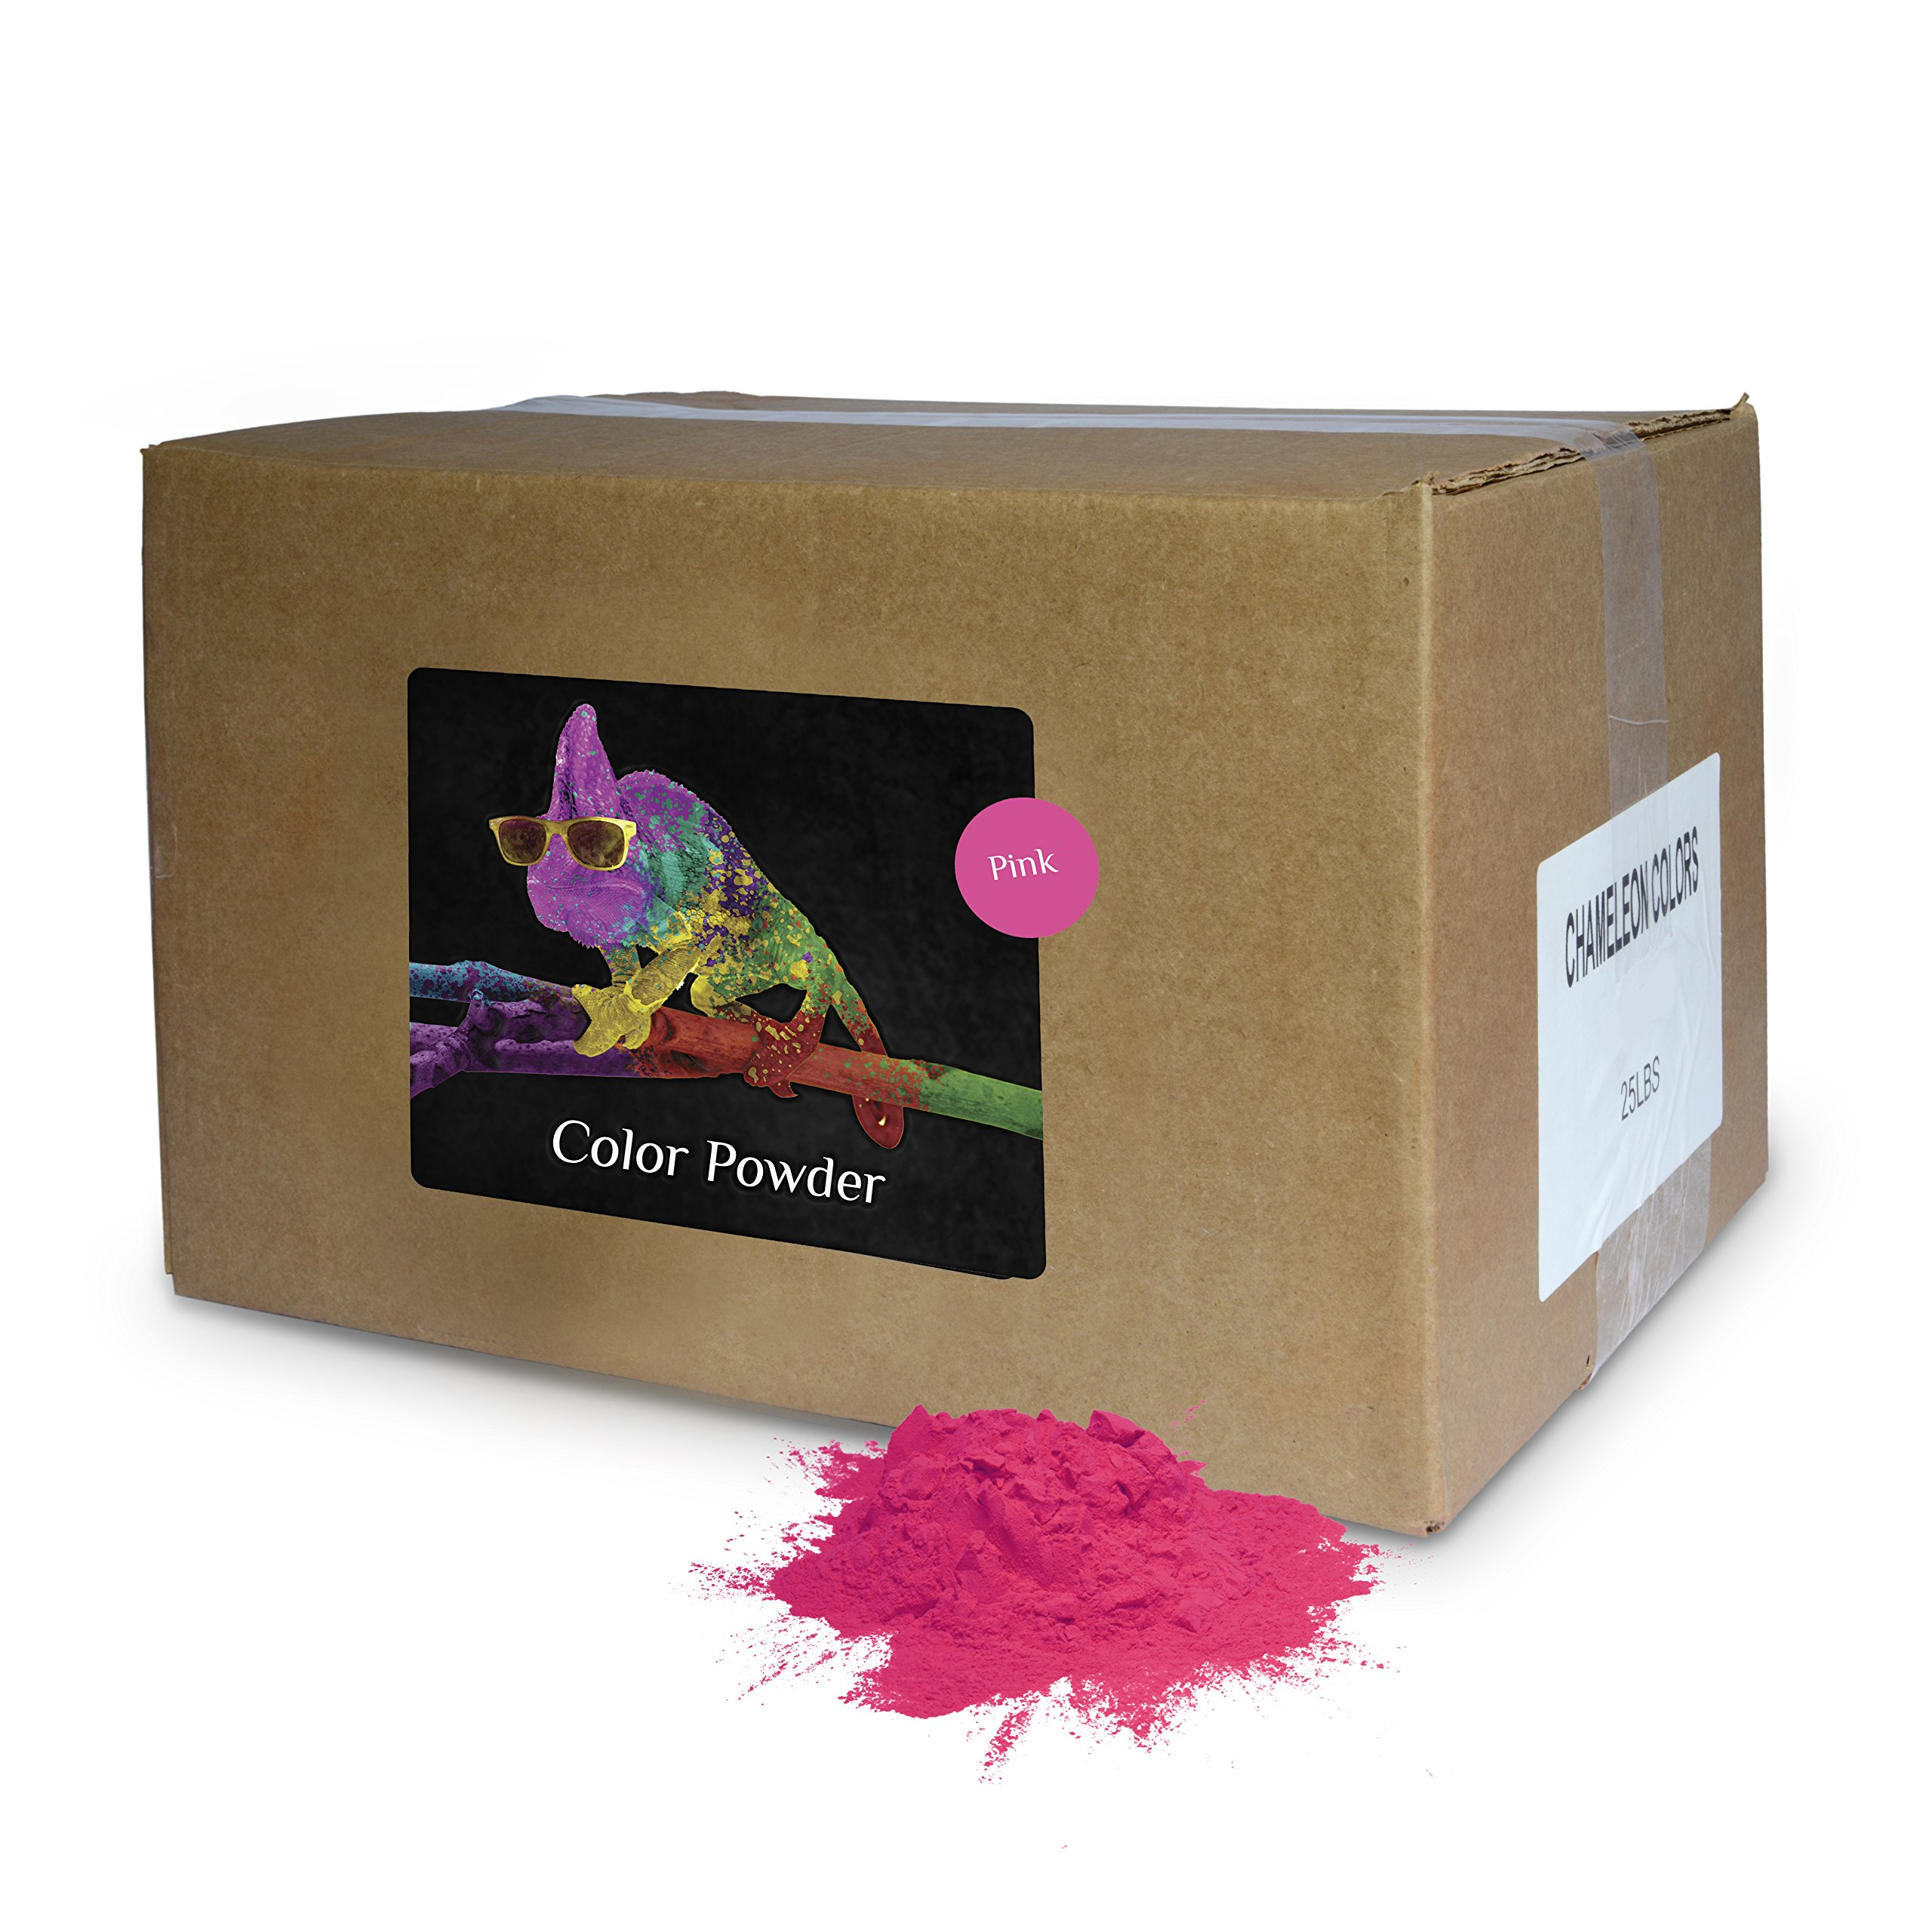 Holi Powder Bulk by Chameleon Colors - Pink - 25 lbs. Pure, Authentic Fun - Perfect for a Color Run, 5k, Festival, Party or Any Other Event You Want to Make Colorful.